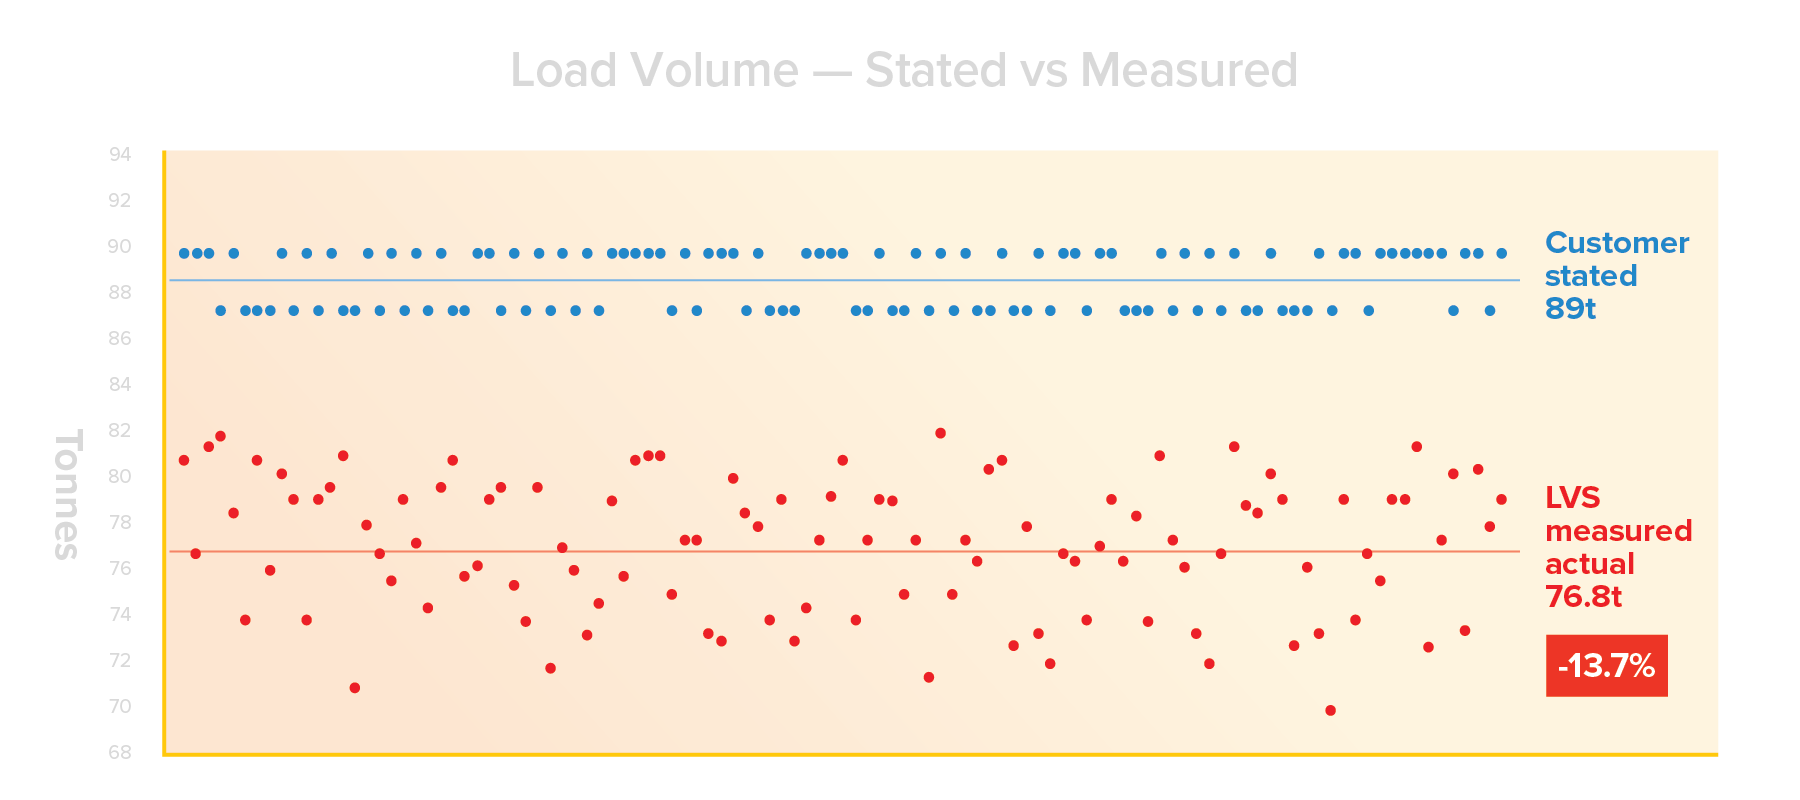 Load Volume - Stated vs Measured